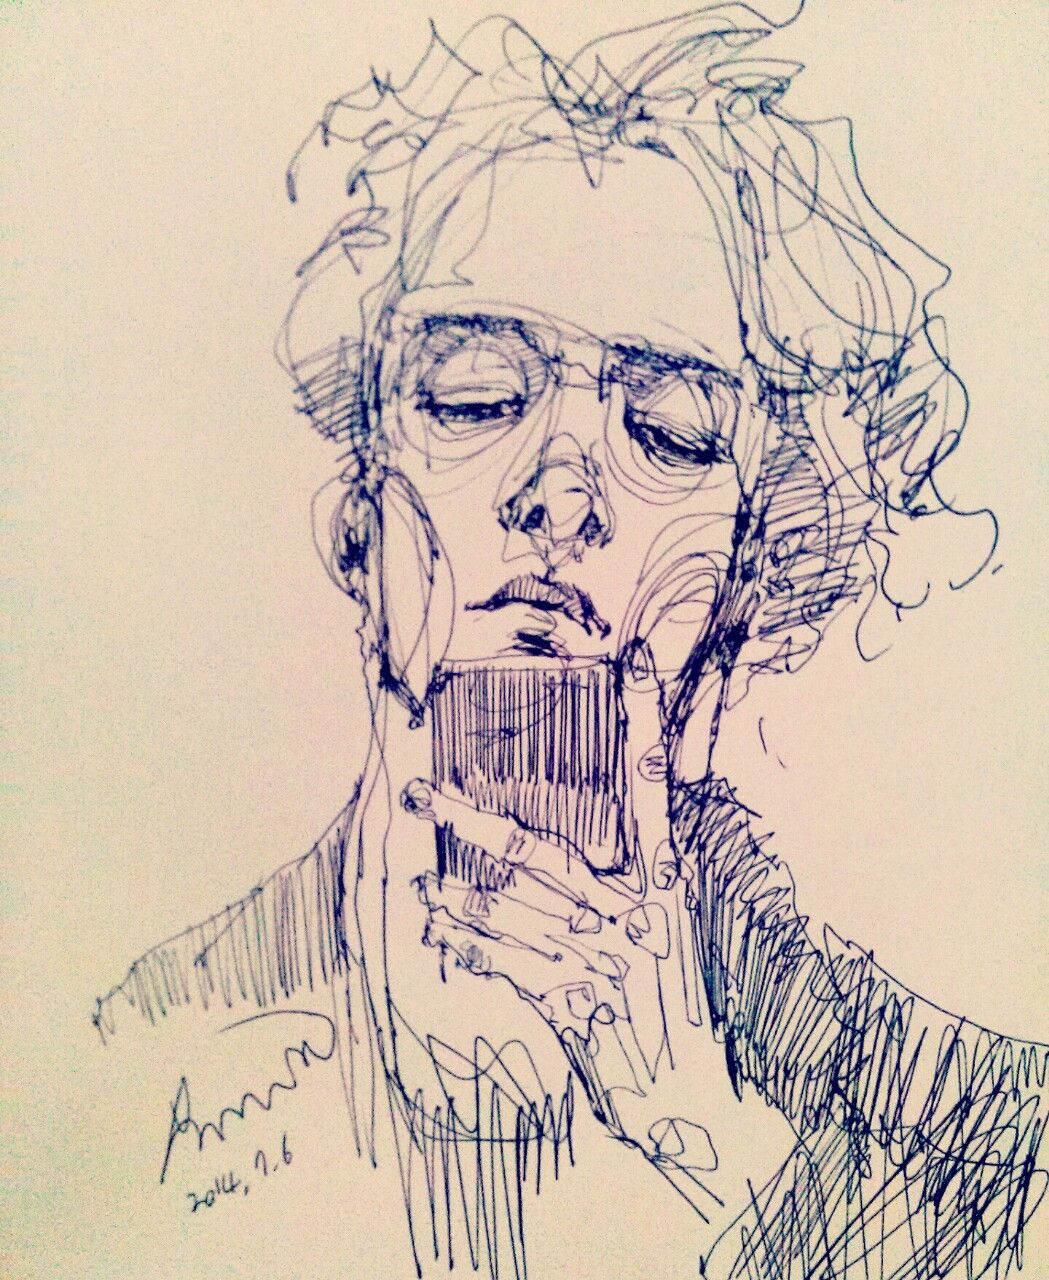 drawing | Tumblr